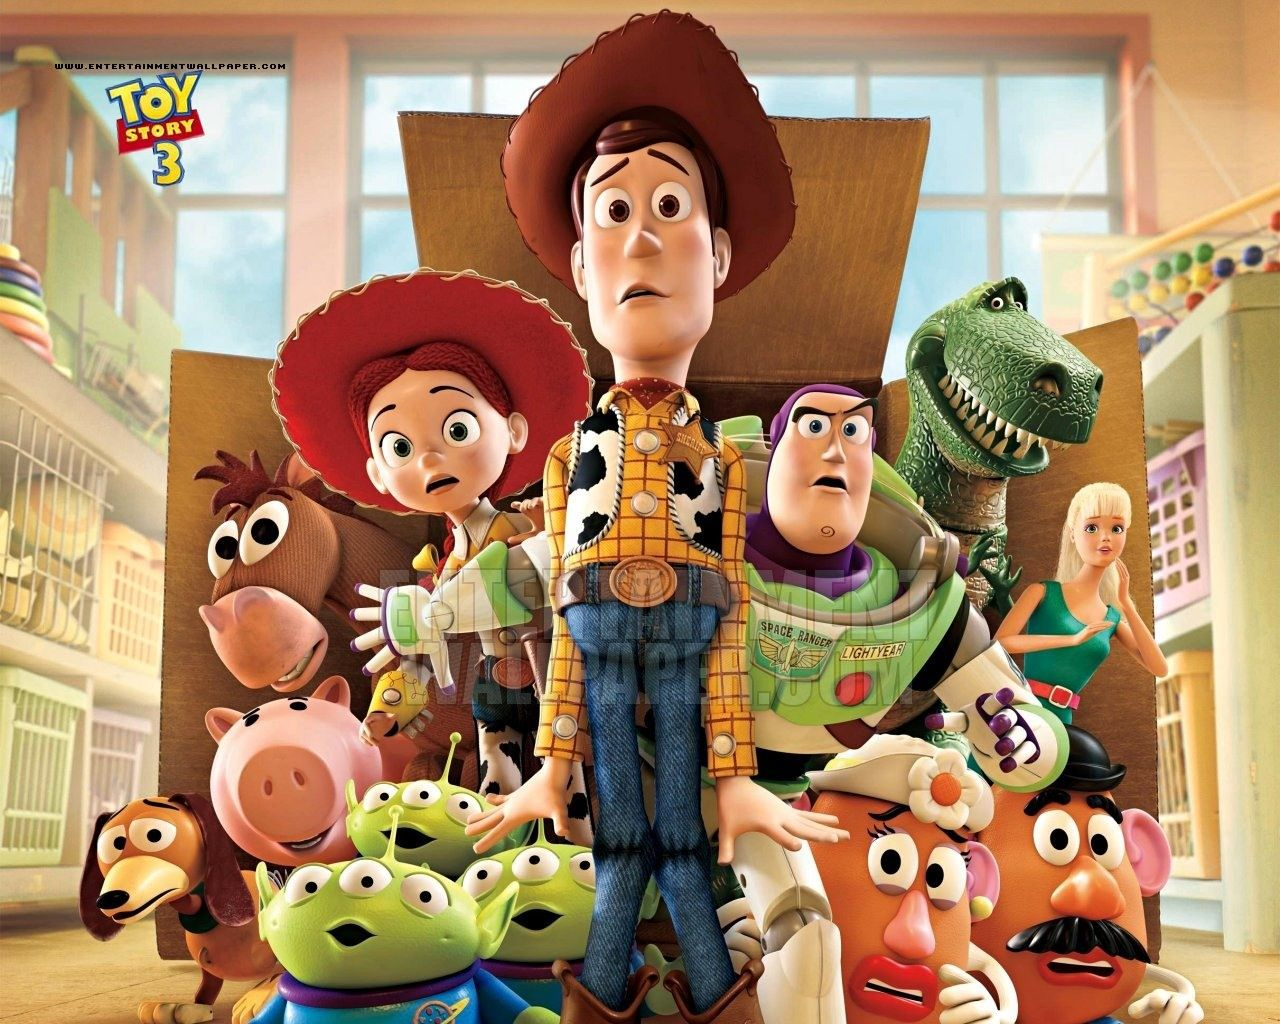 Toy Story Wallpapers 0.34 Mb - 4USkY